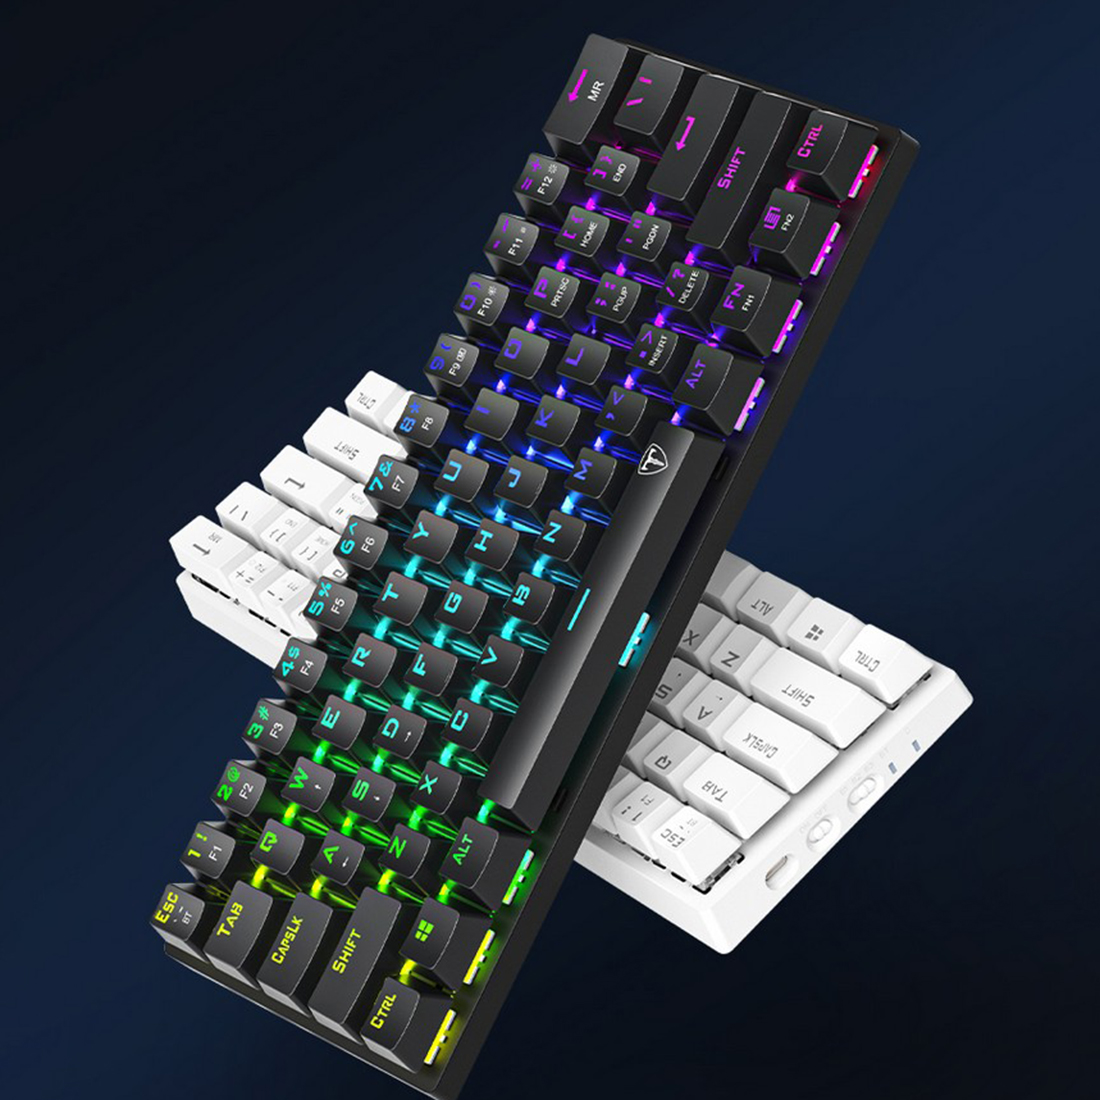 ET61 61-Key Gaming Mechanical Keyboard WirelessBluetooth+Wired Dual-mode RGB Backlit for Windows /Mac /Andoid